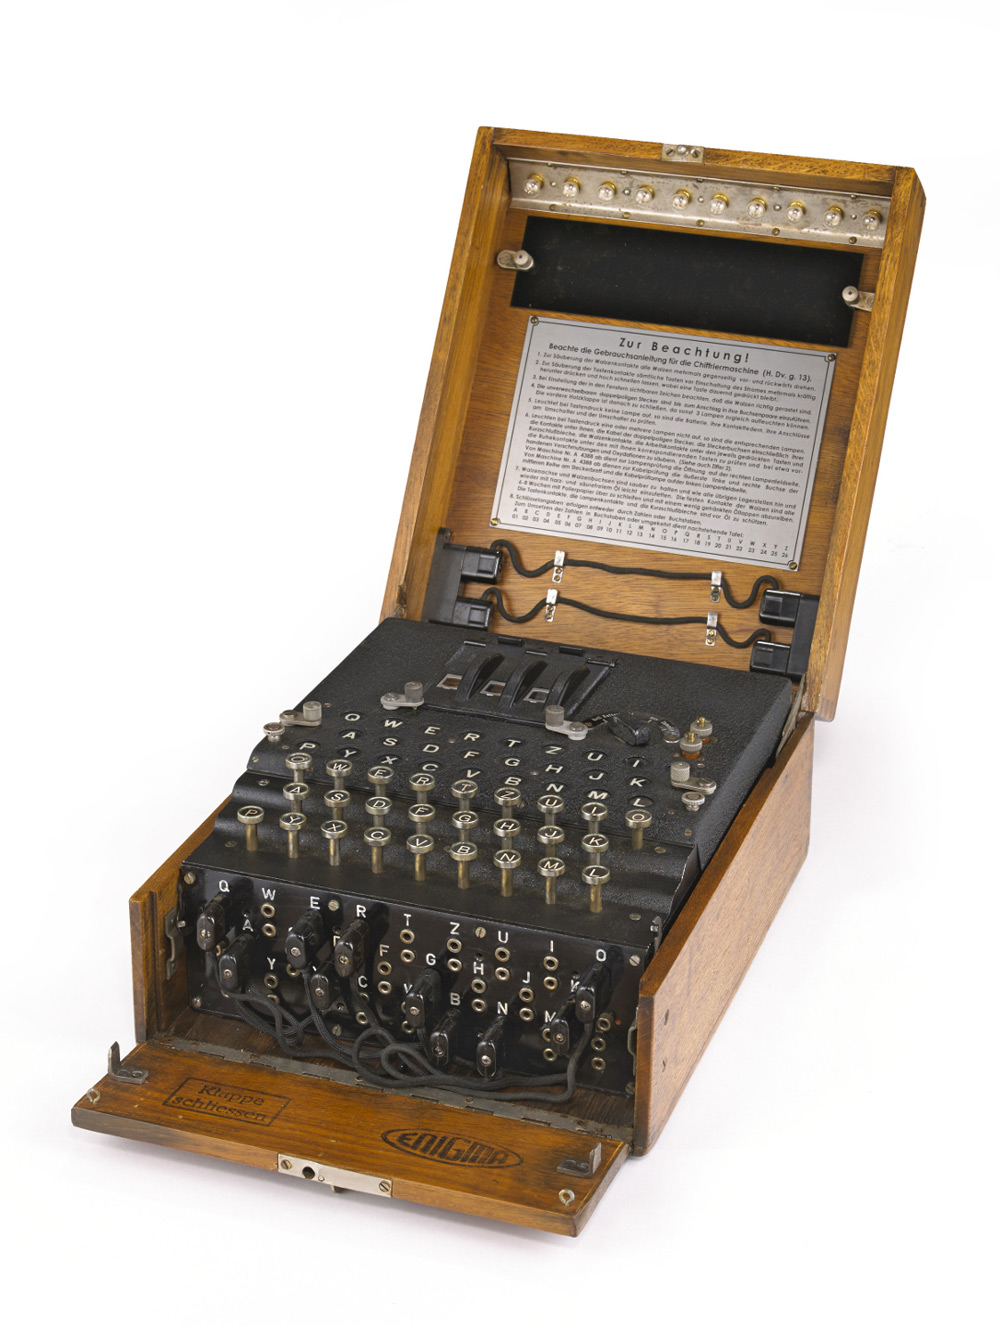 german 3 rotor enigma machine sold for record 269 000 at bonhams auction extravaganzi. Black Bedroom Furniture Sets. Home Design Ideas